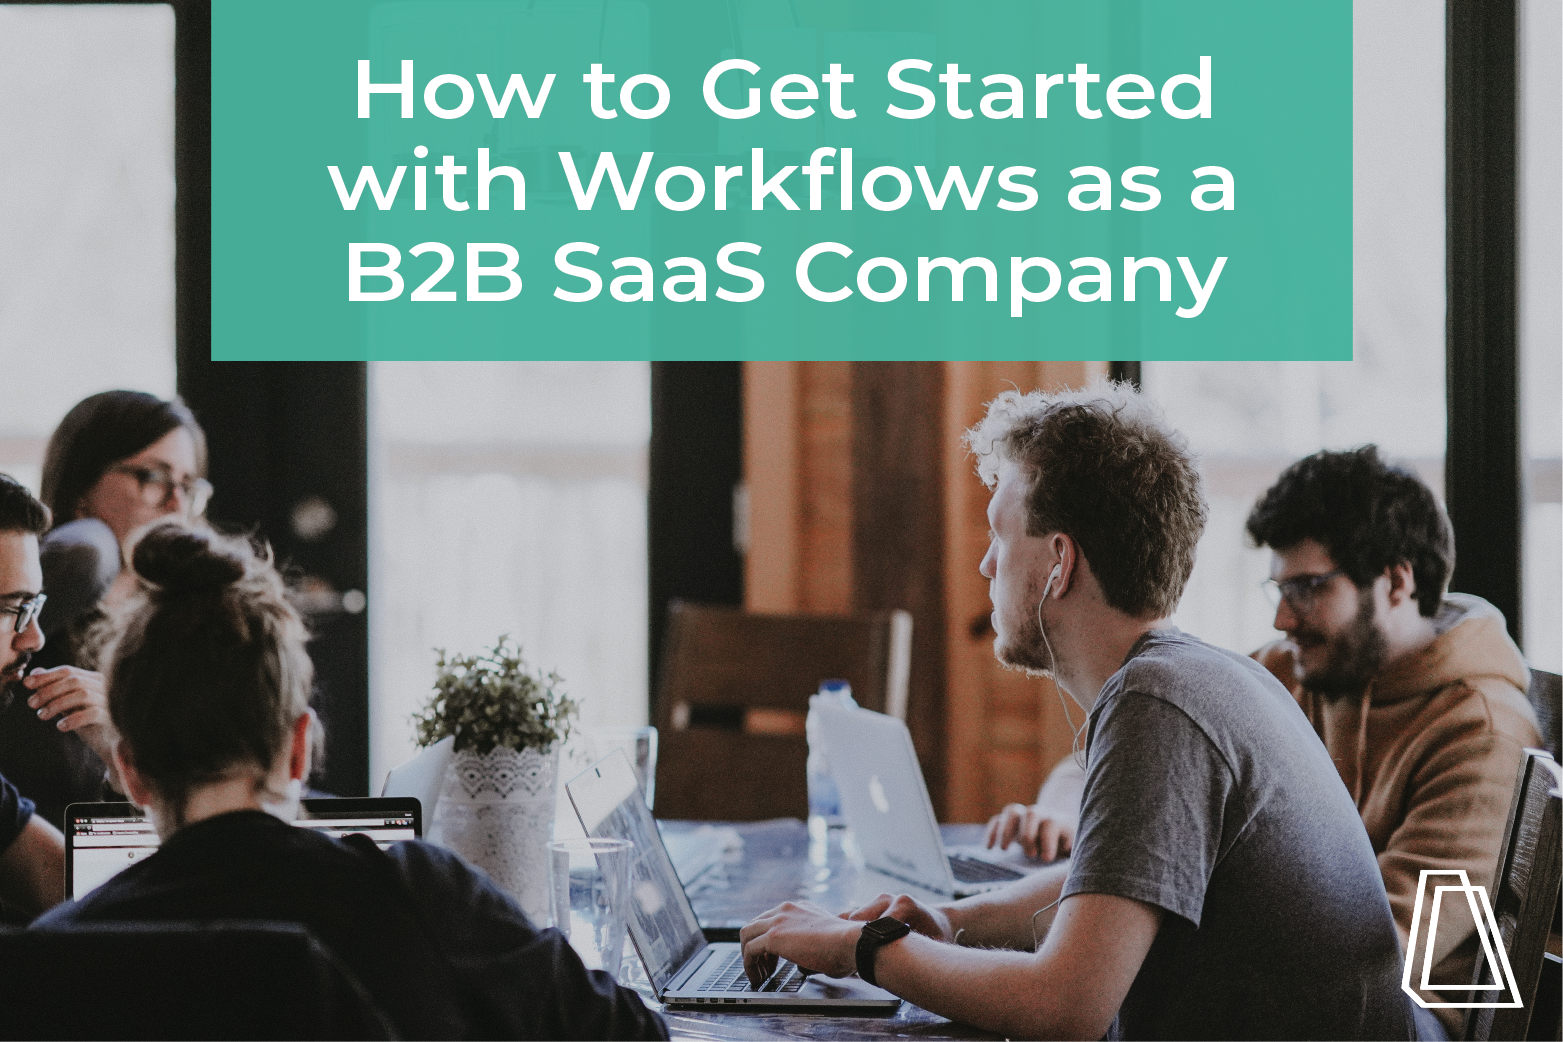 HOW TO GET STARTED WITH WORKFLOWS AS A B2B SAAS COMPANY